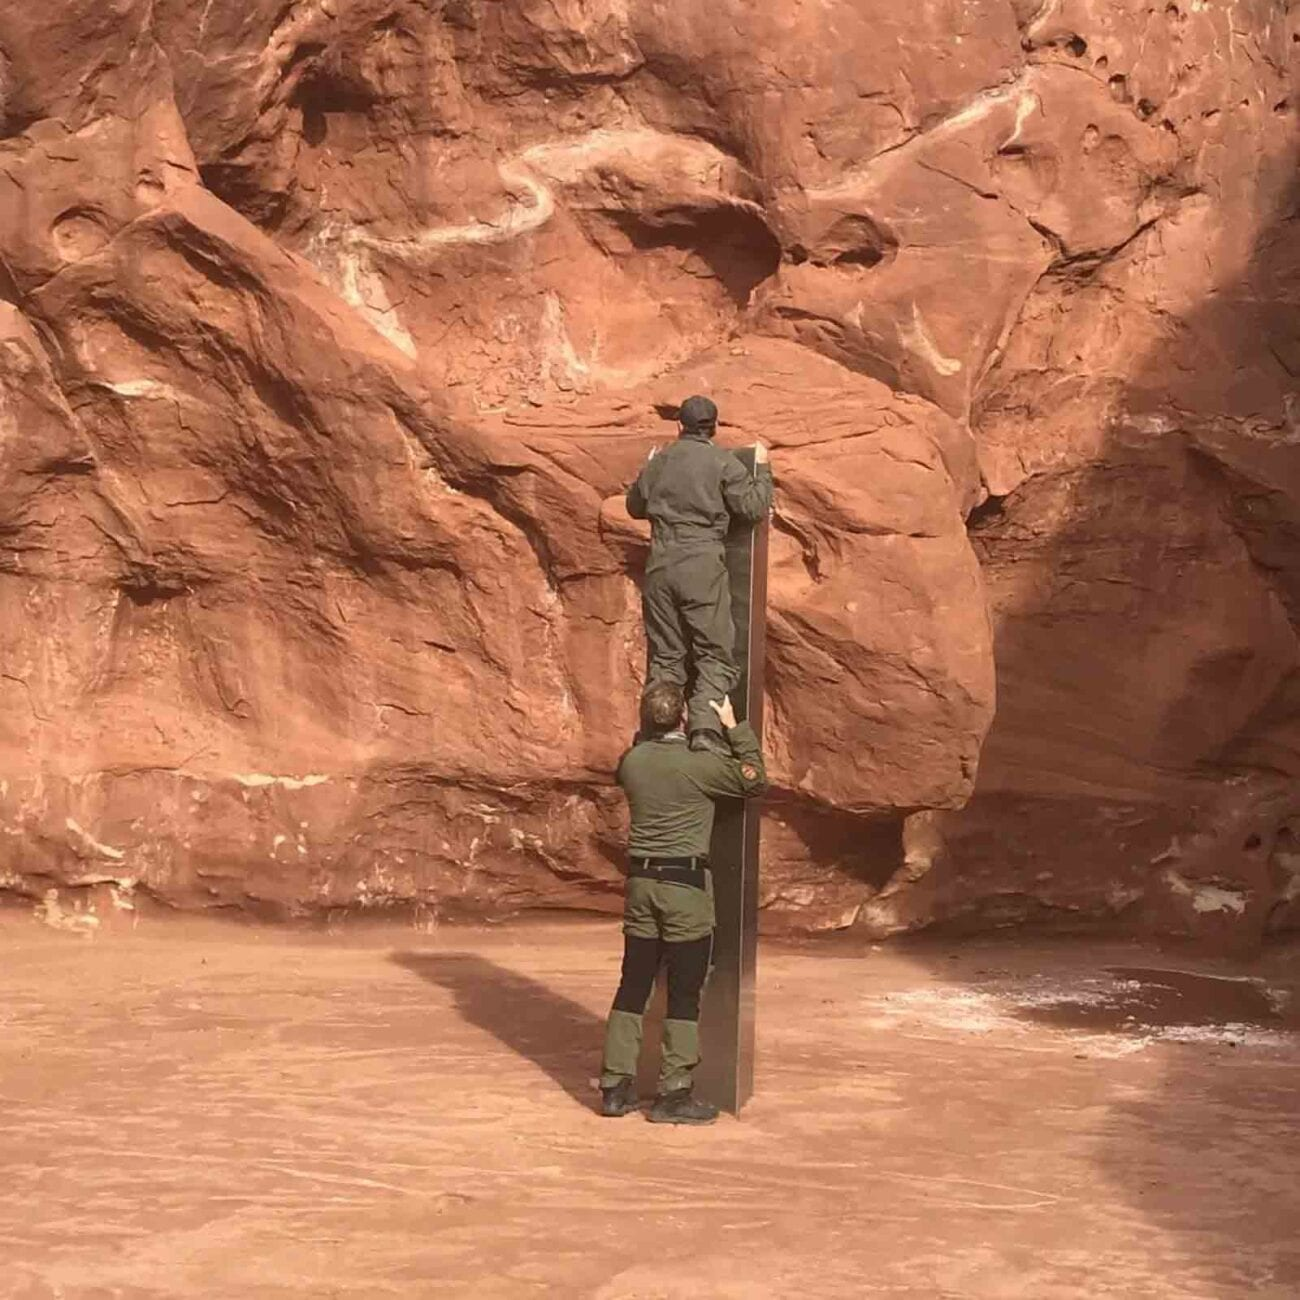 Safety officers spooted a strange metal monolith in Utah. Could this weird object be proof UFOs are real?